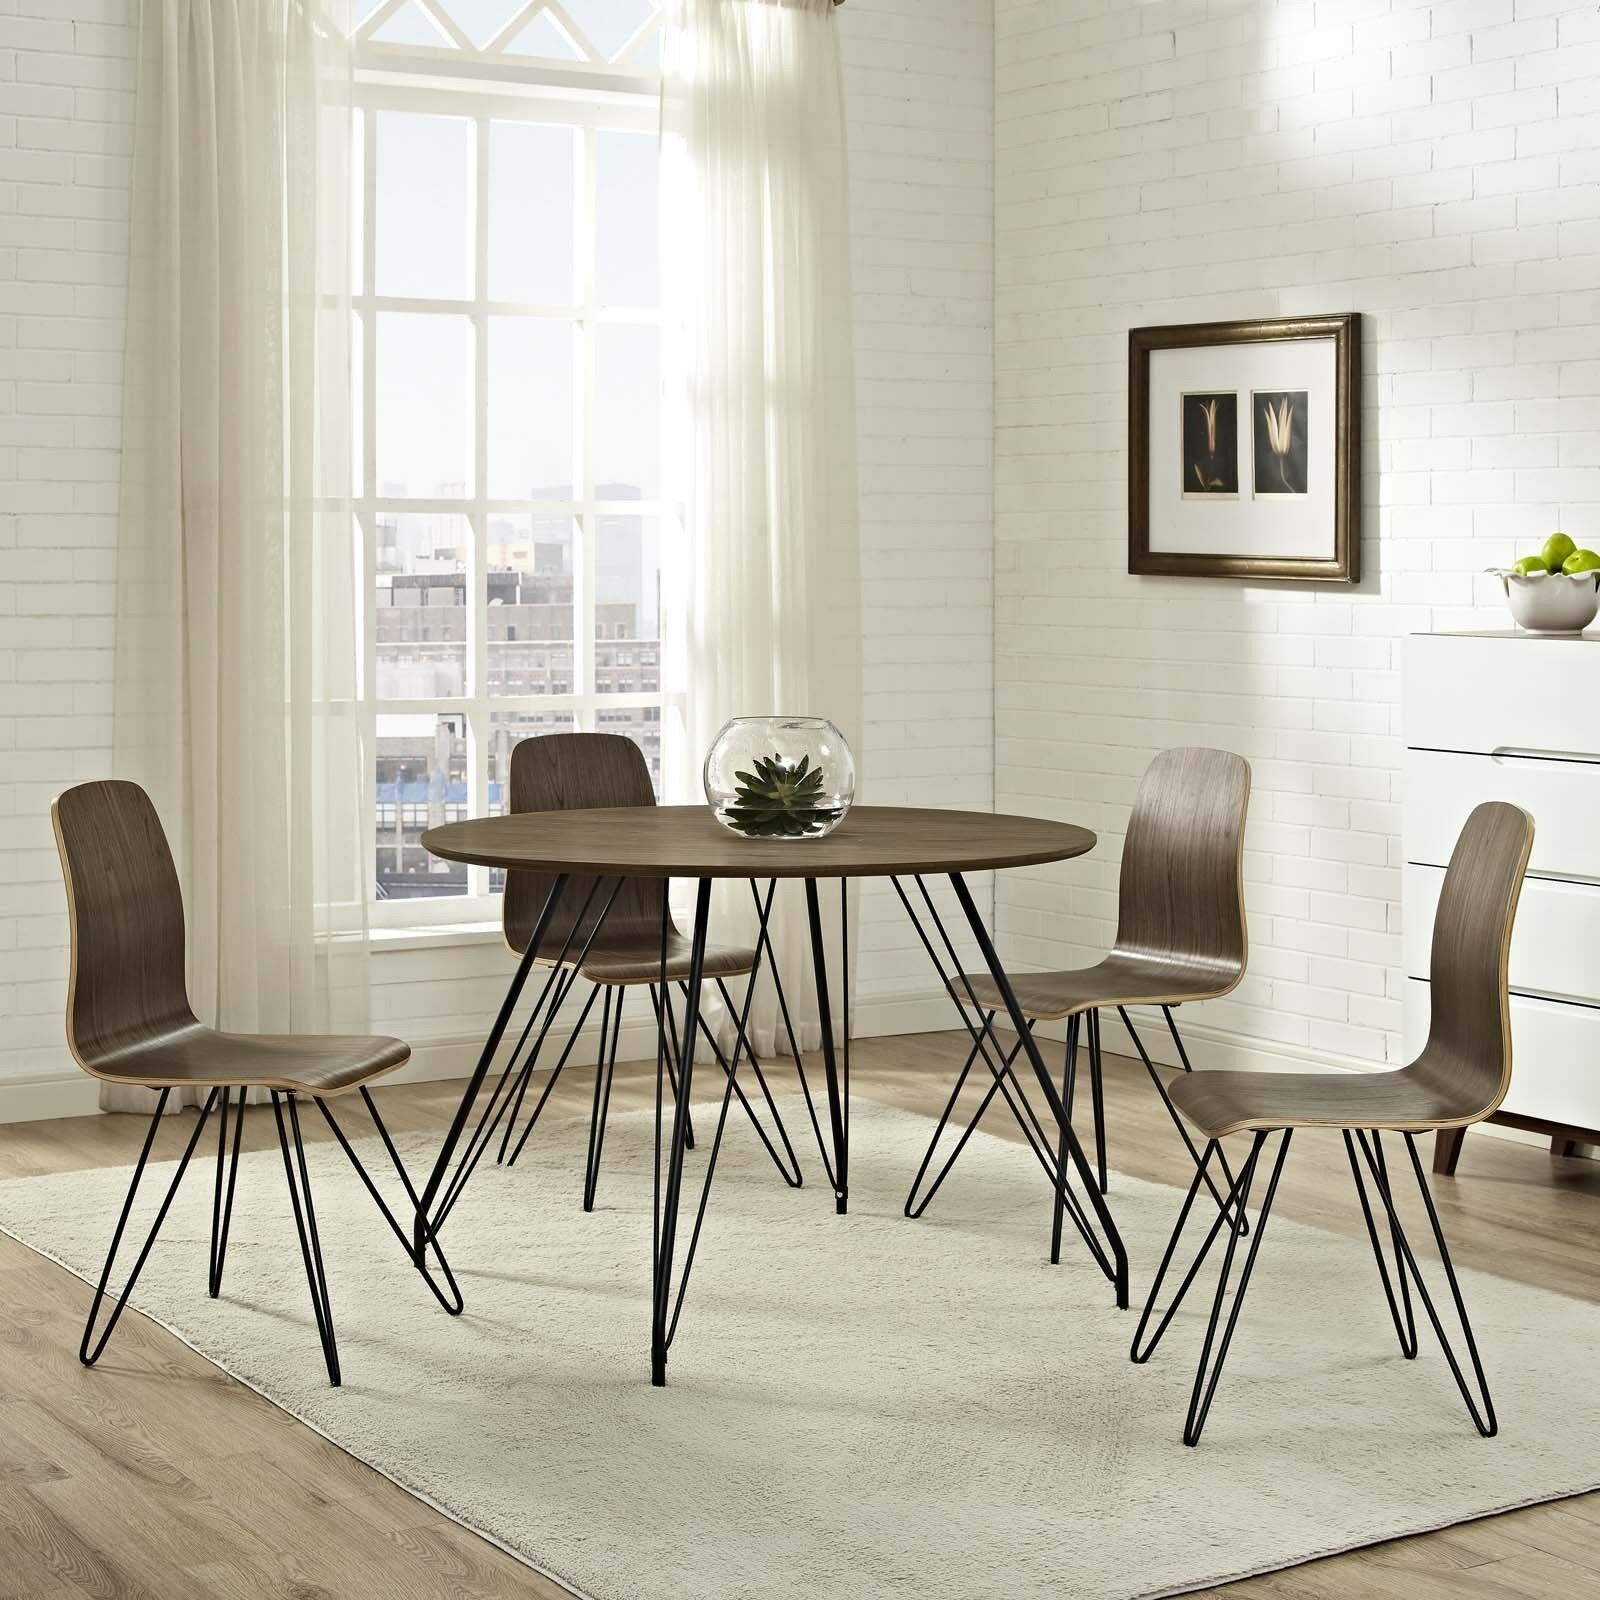 Details about Mid-Century Modern Walnut Laminate Round Dining Table With  Metal Hairpin Legs